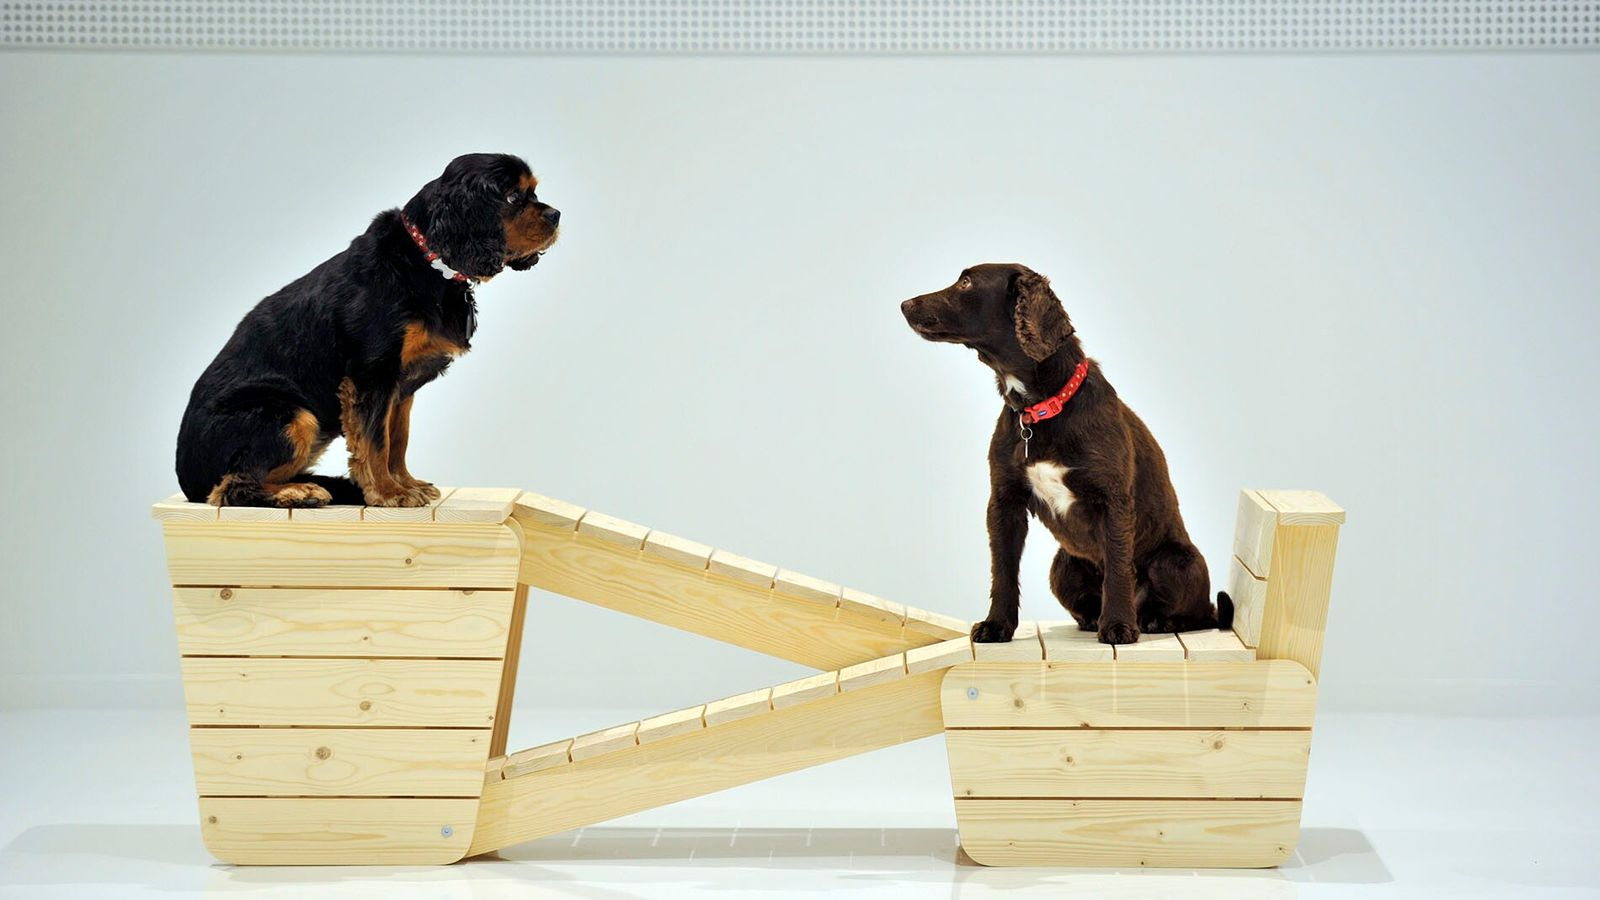 Architecture for Dogs showcases pieces created by some of the world's leading architects.